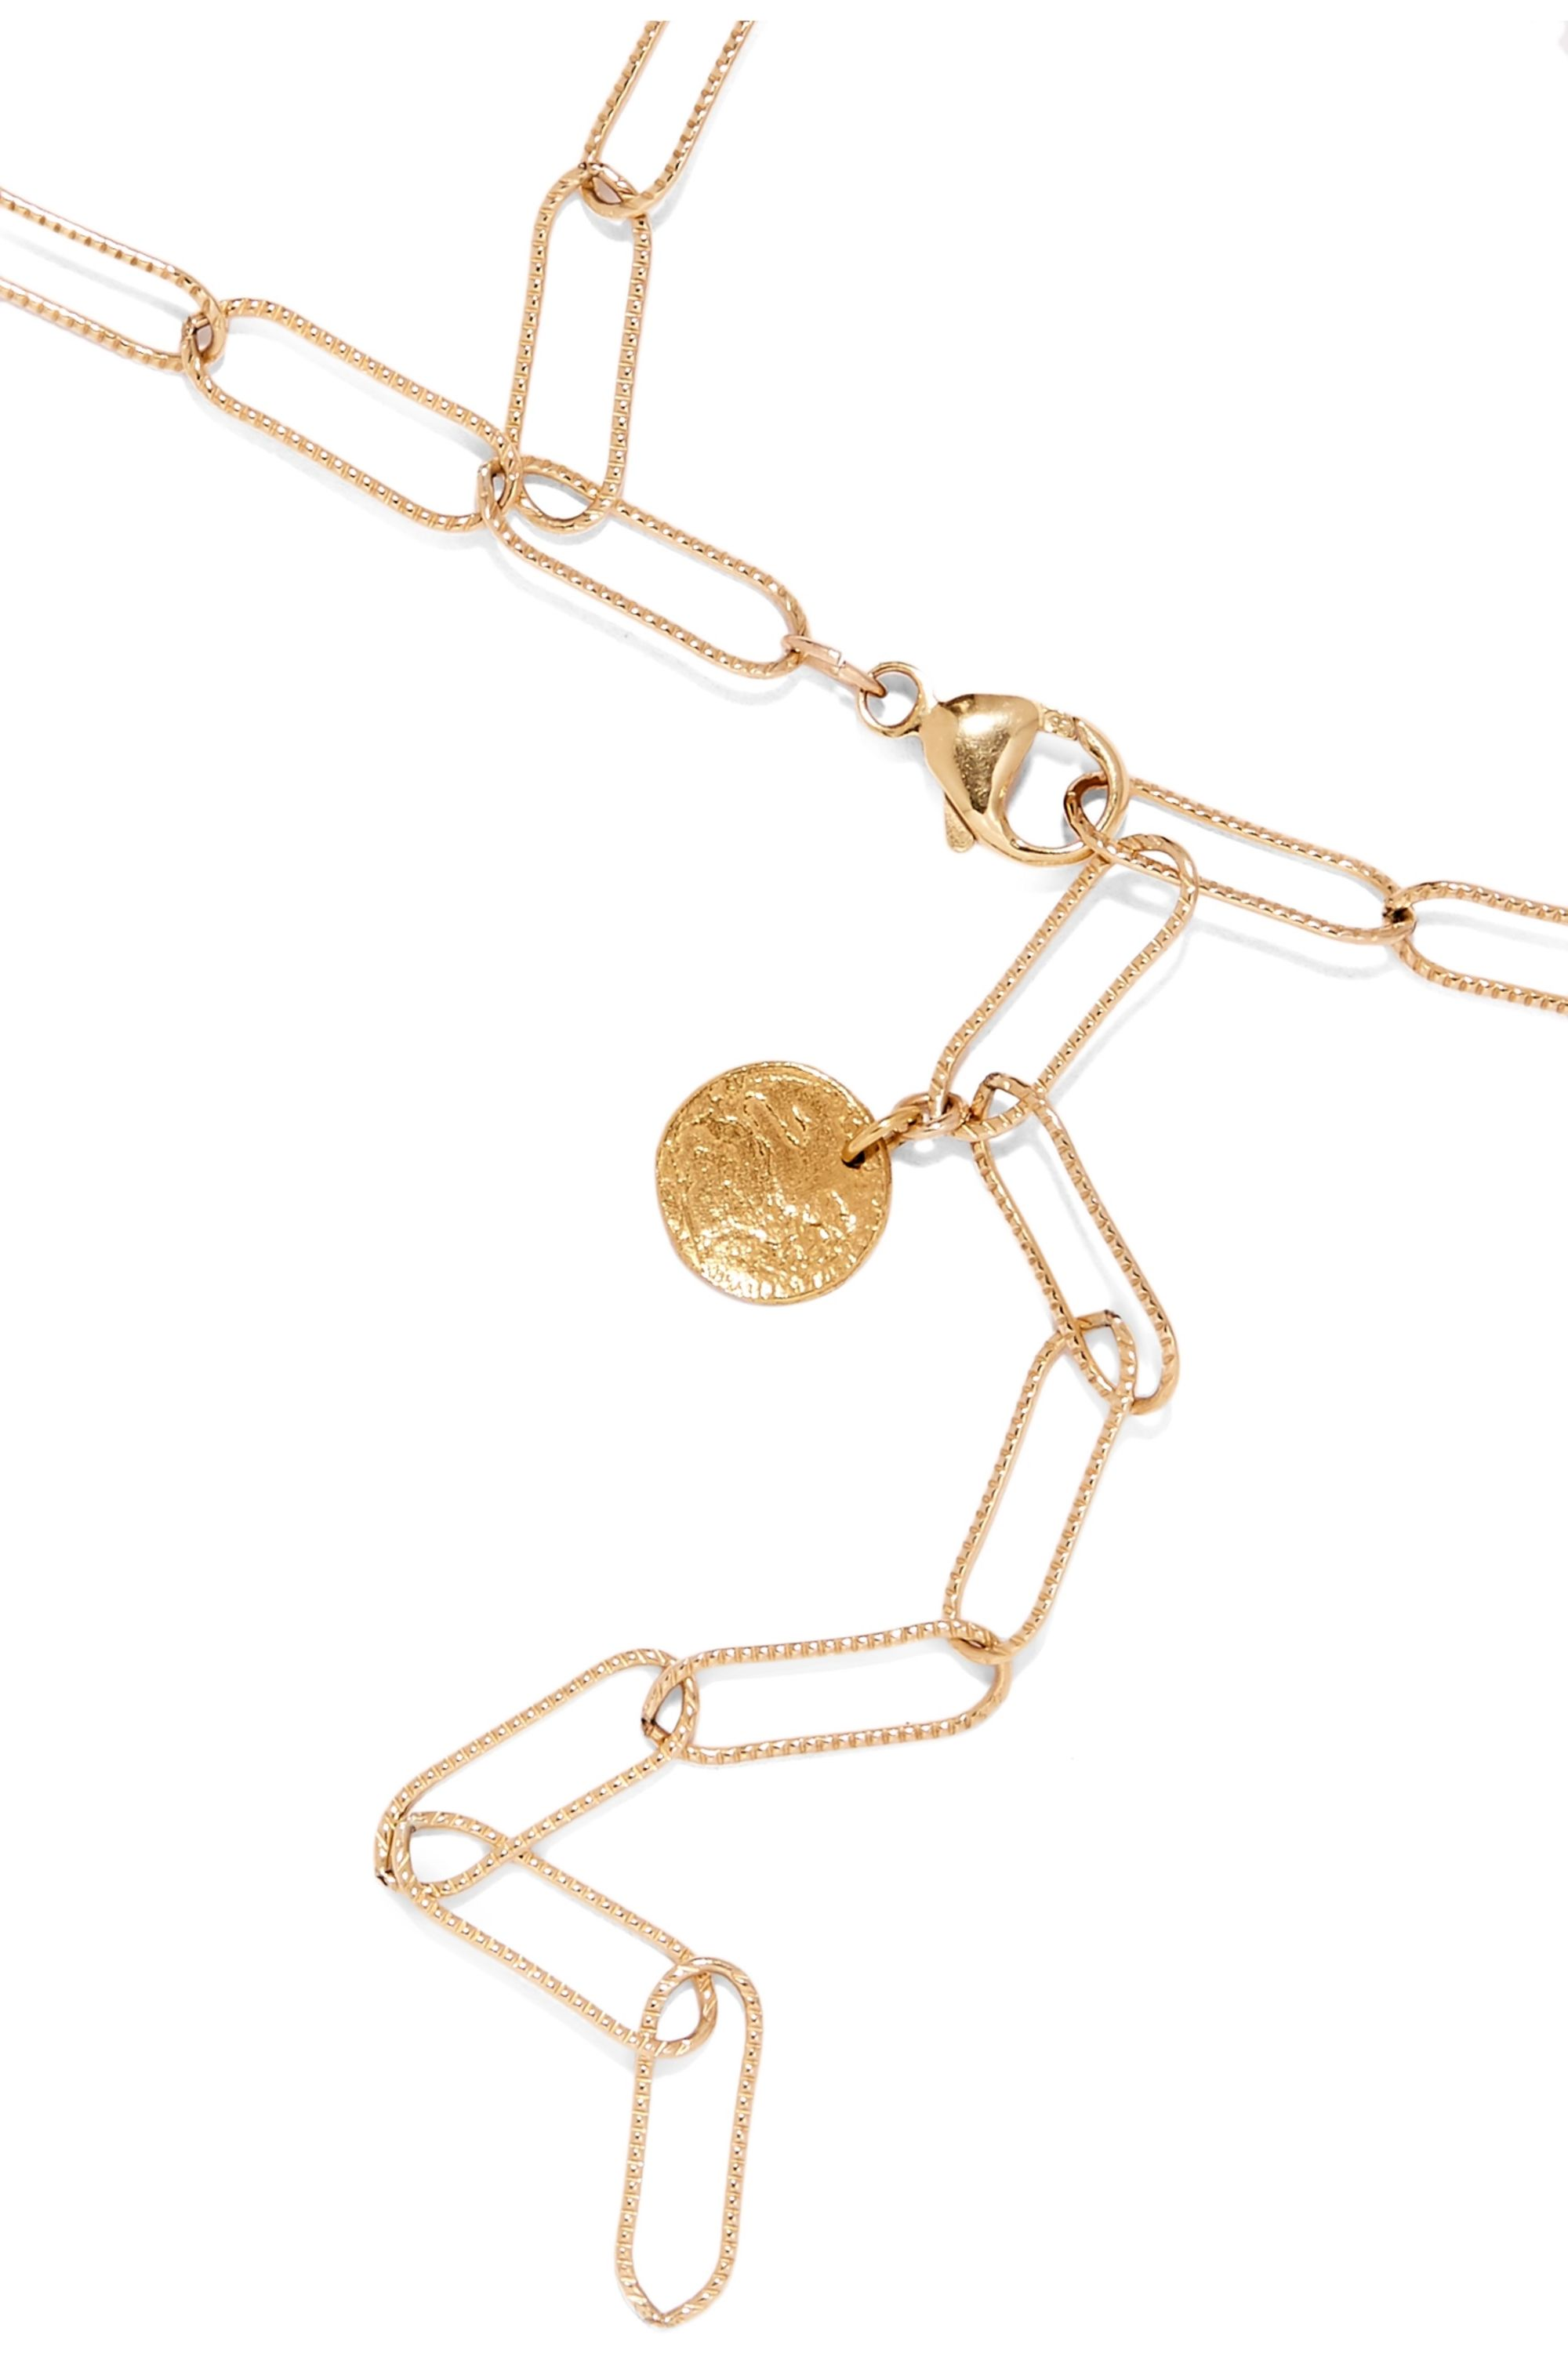 Alighieri Dante and The World gold-plated necklace